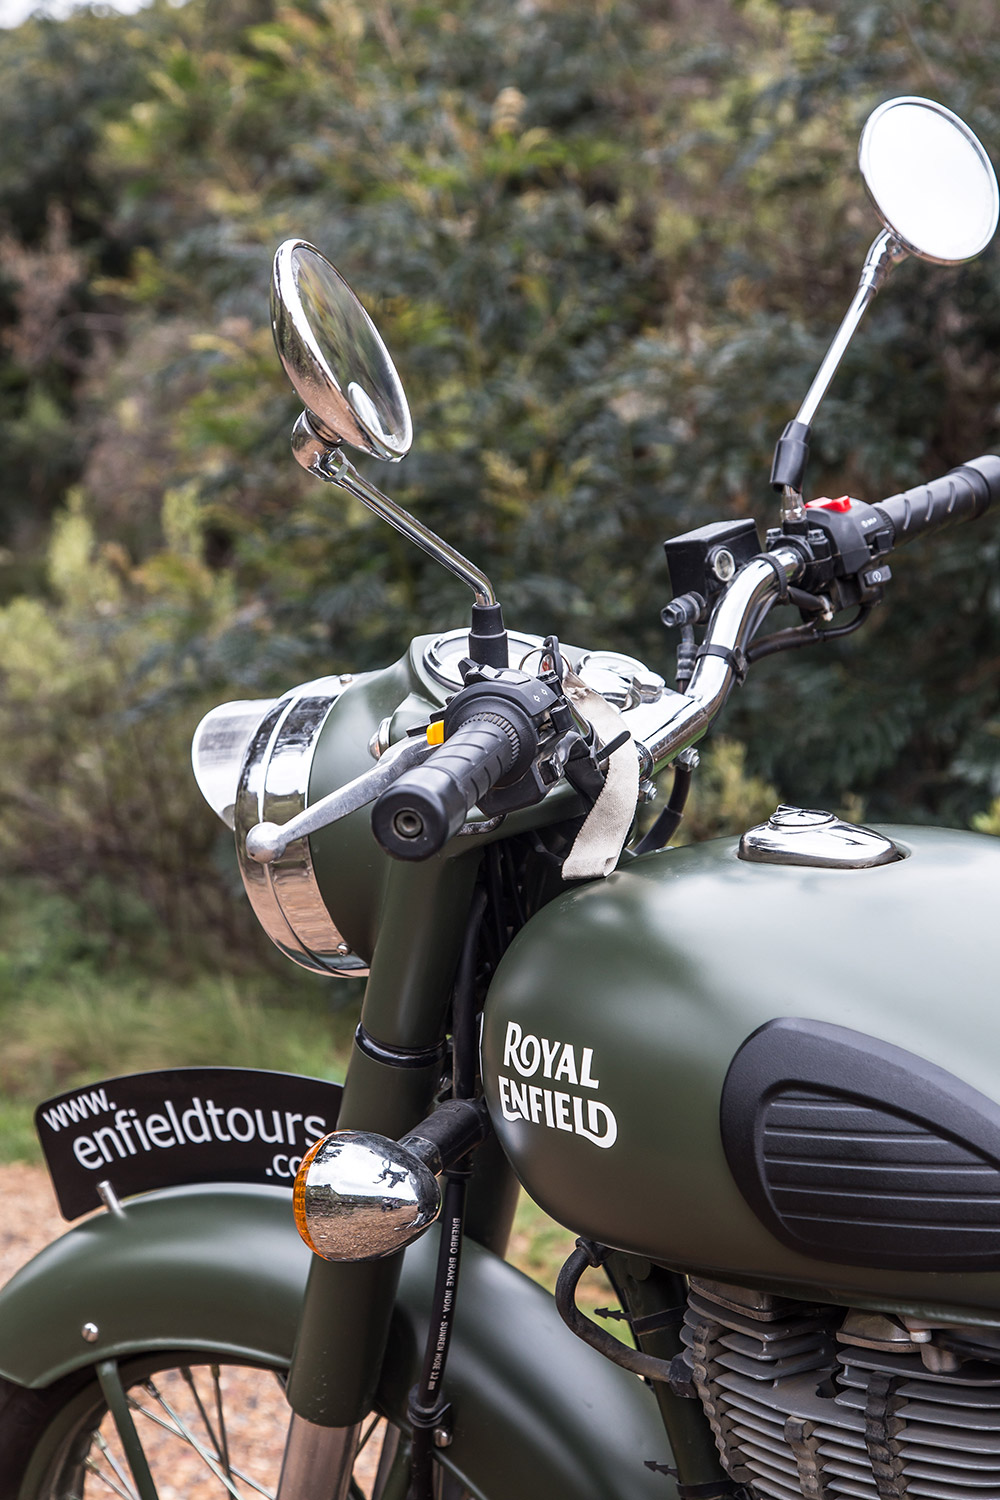 royal-enfield-2.jpg